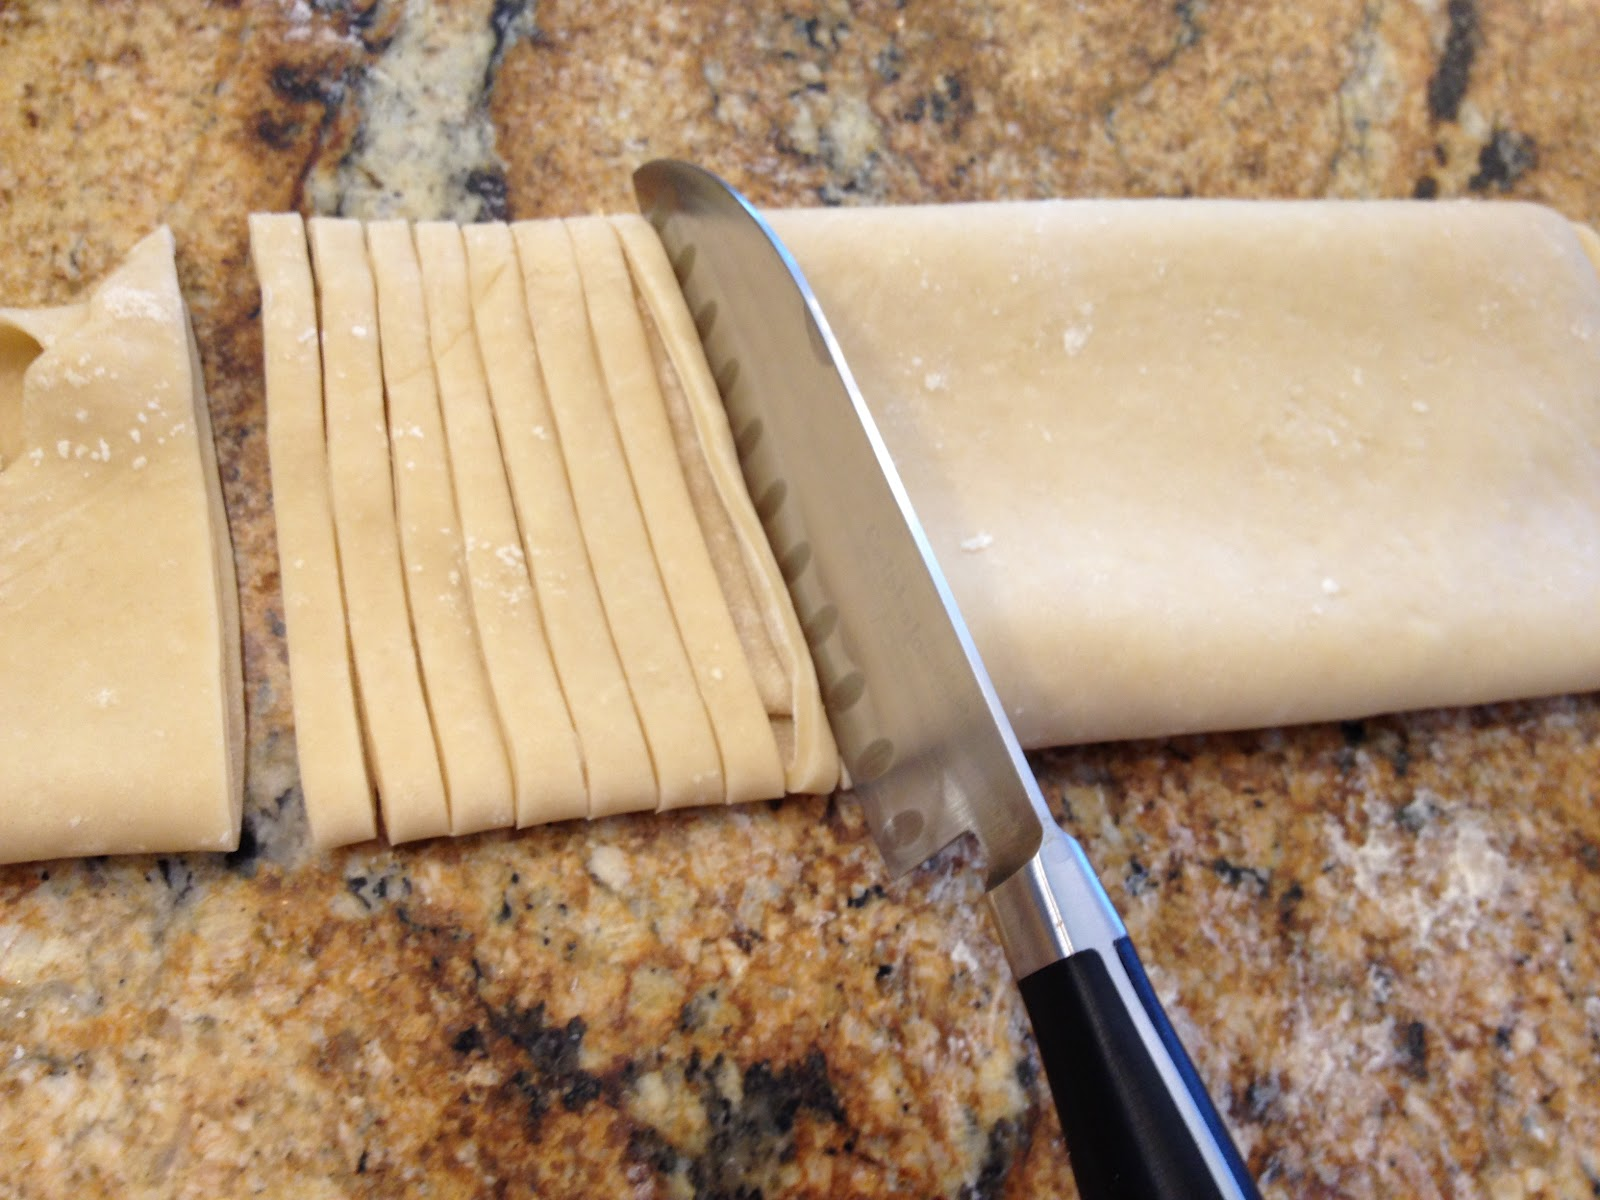 Easiest way to make fresh pasta dough without a machine